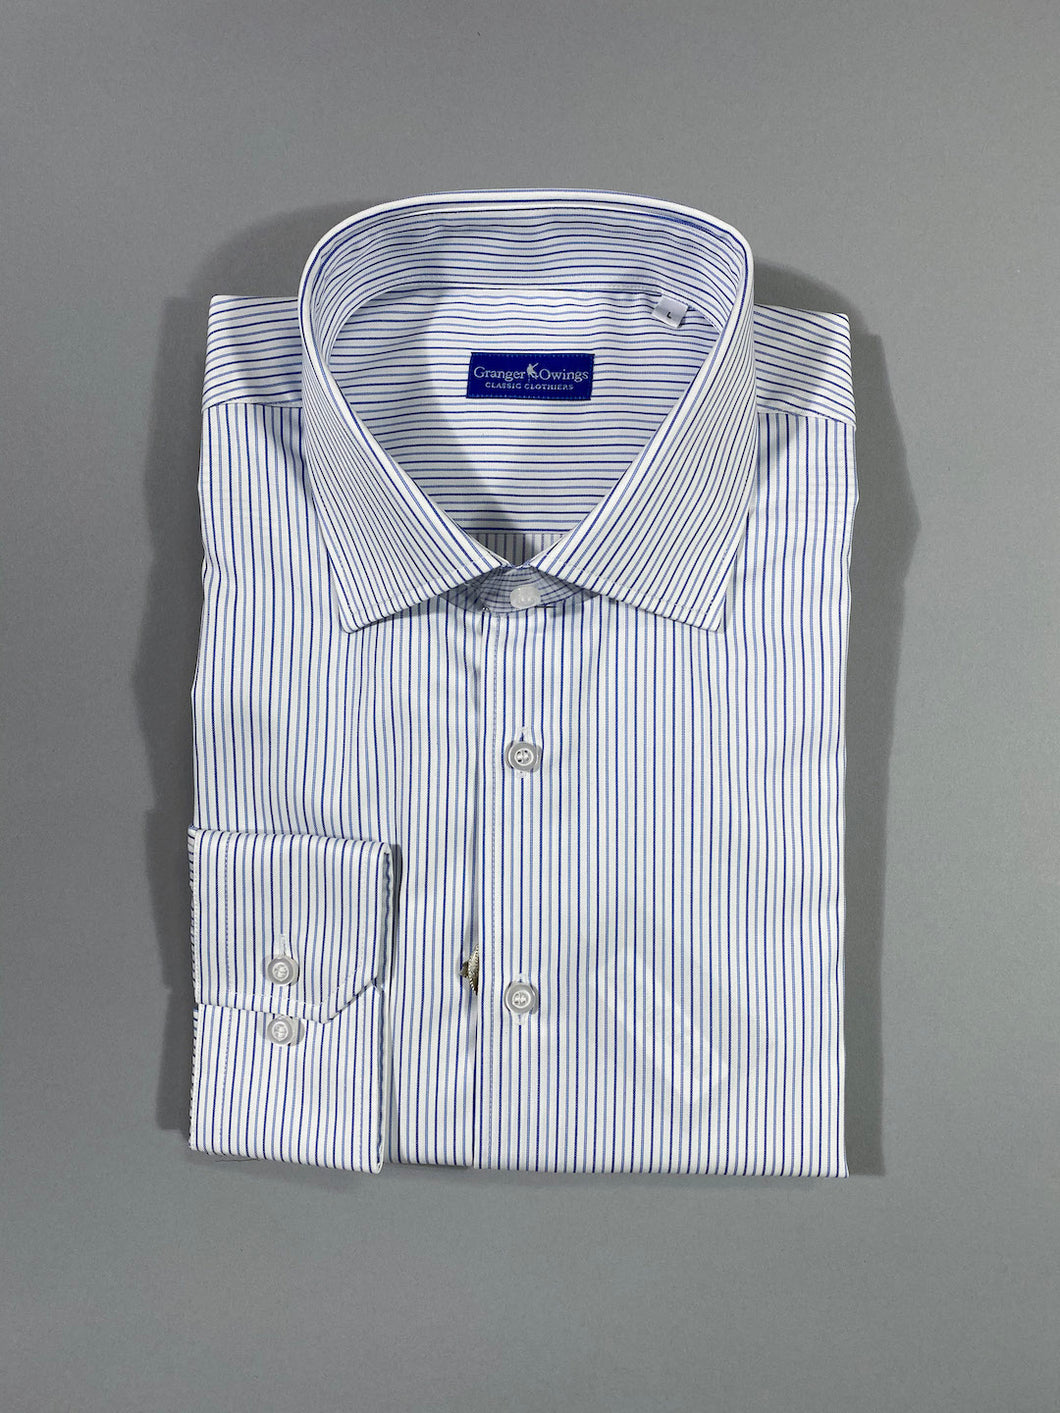 LIGHT BLUE AND NAVY STRIPE SPORT SHIRT